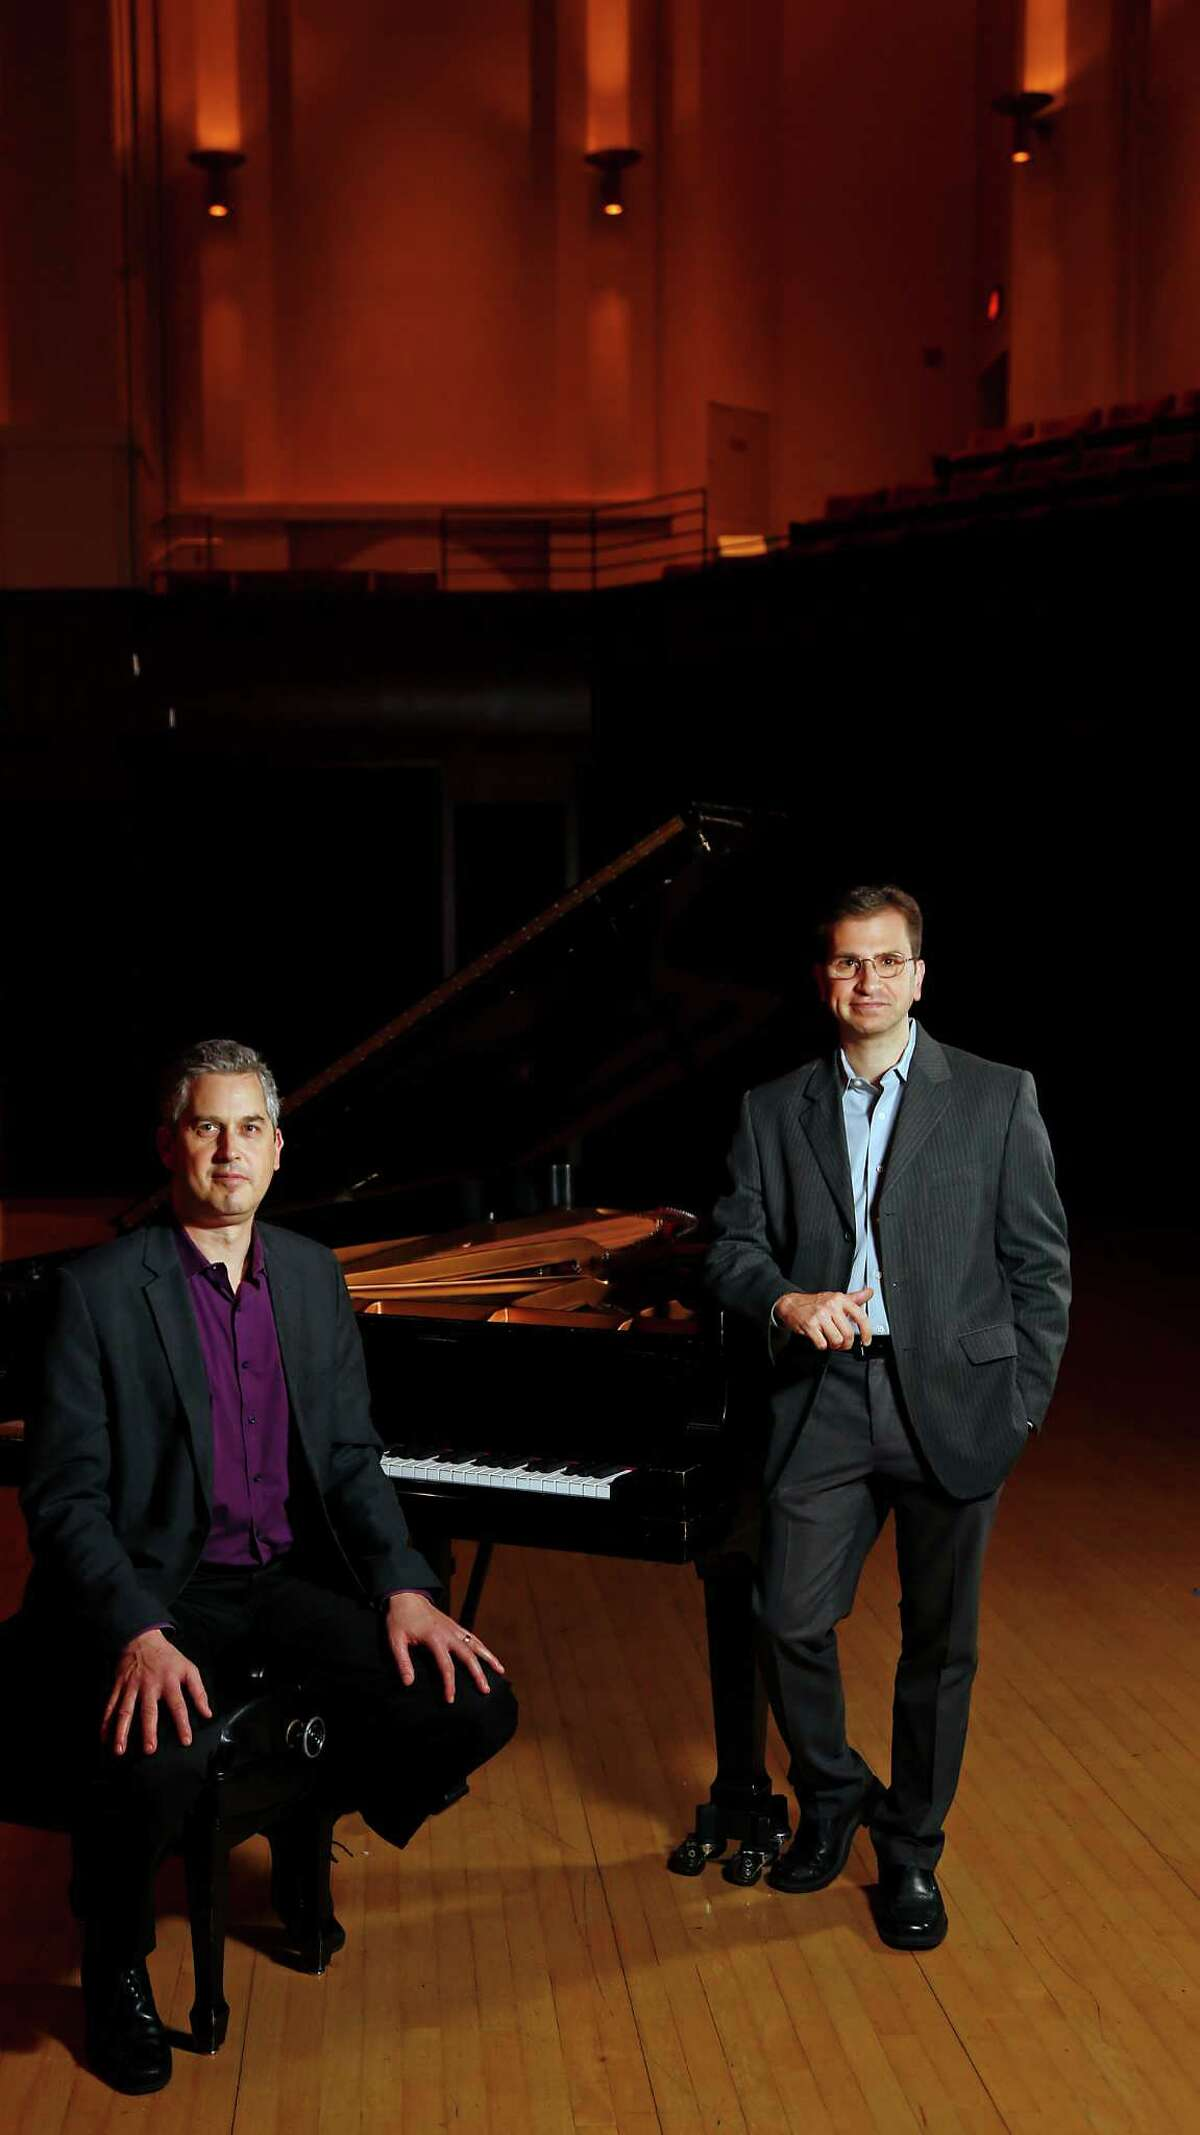 Anthony Brandt left, and Karim Al-Zand right, poses for a portrait at Rice University Wednesday, Dec. 24, 2014, in Houston. Brandt and Al-Zand are Houston composers who have written new pieces that will premiere Jan. 10 in a concert by the Musiqa new-music group. ( James Nielsen / Houston Chronicle )